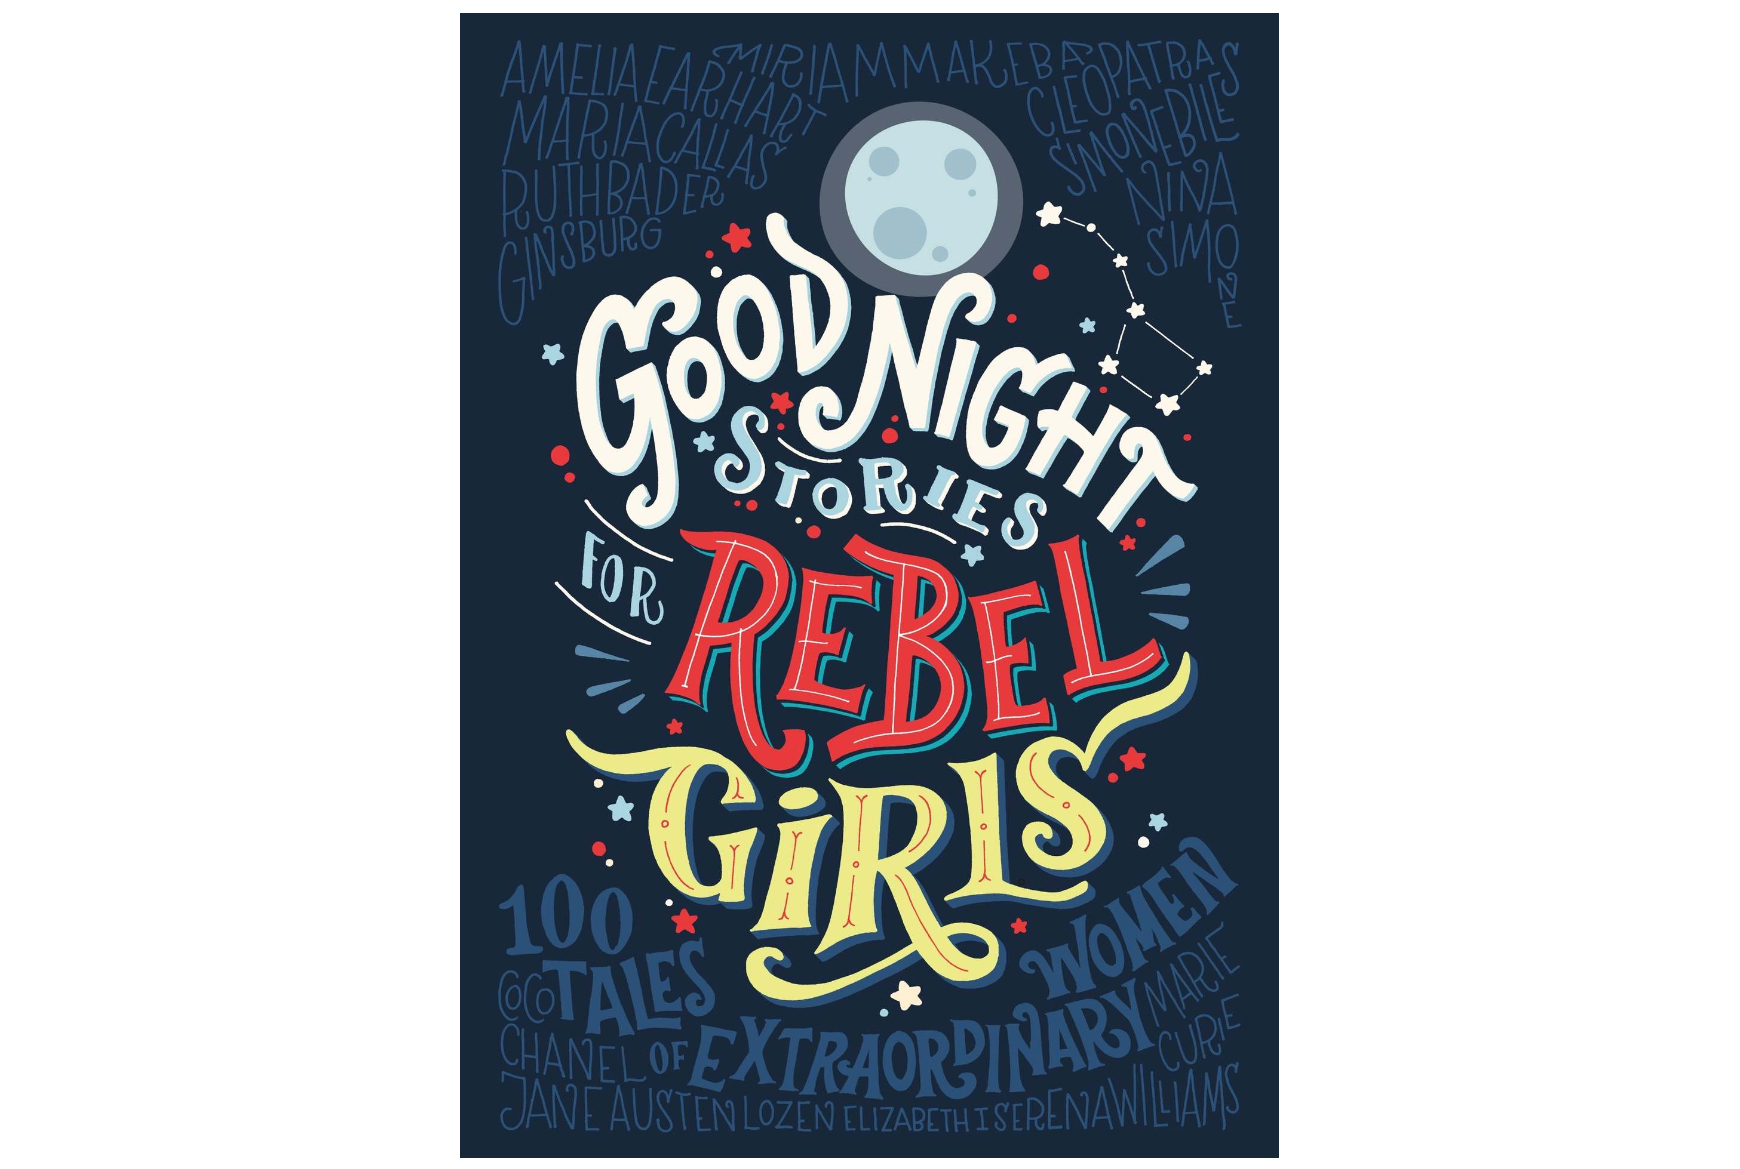 Good Night Stories for Rebel Girls, by Elena Favilli and Francesca Cavallo